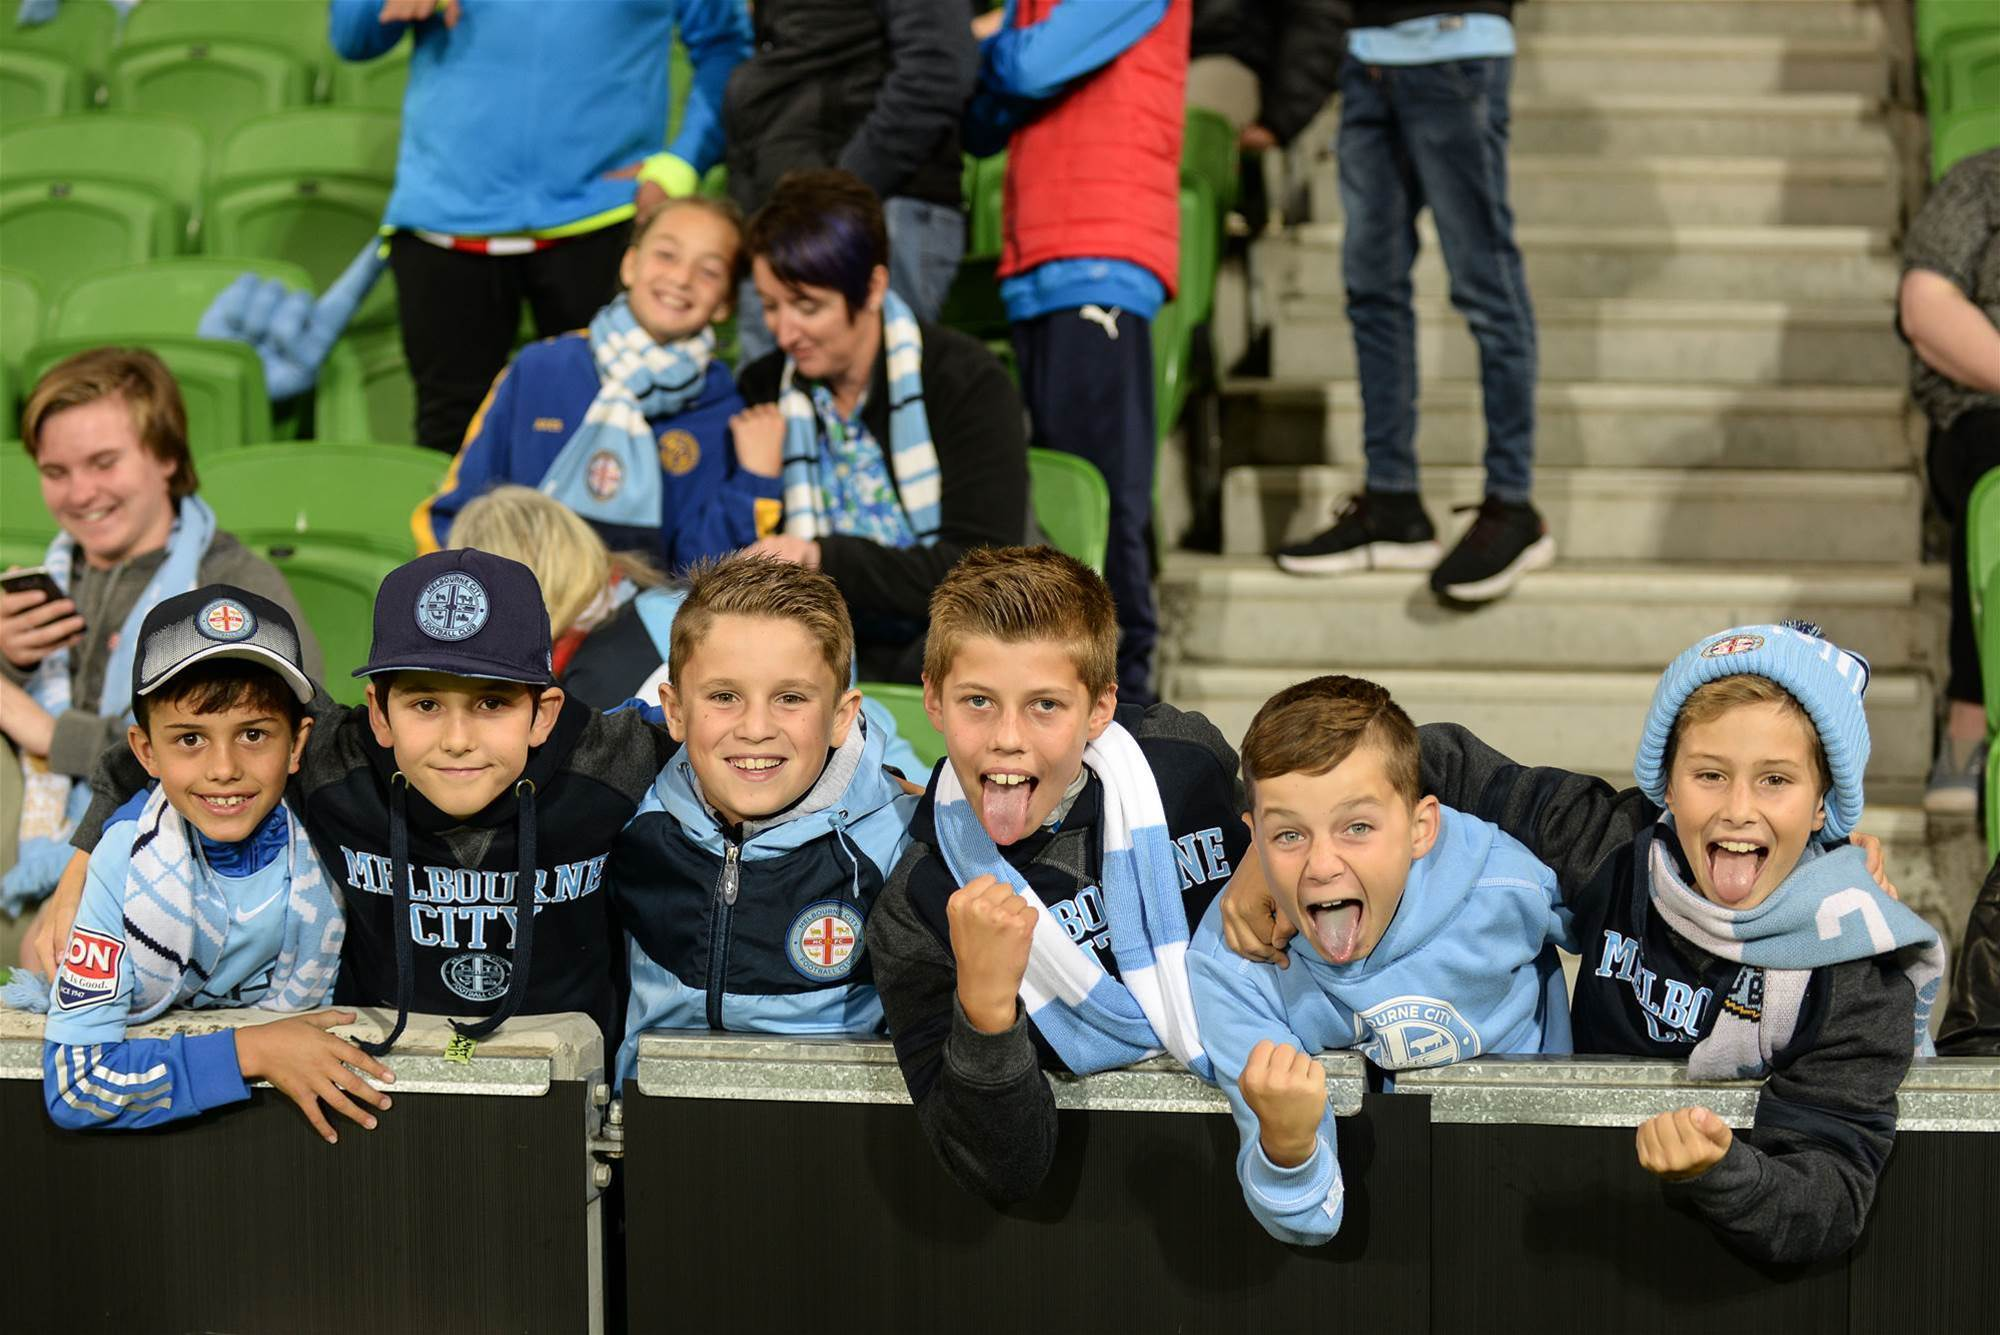 Fans finals special: Melbourne City v Brisbane Roar